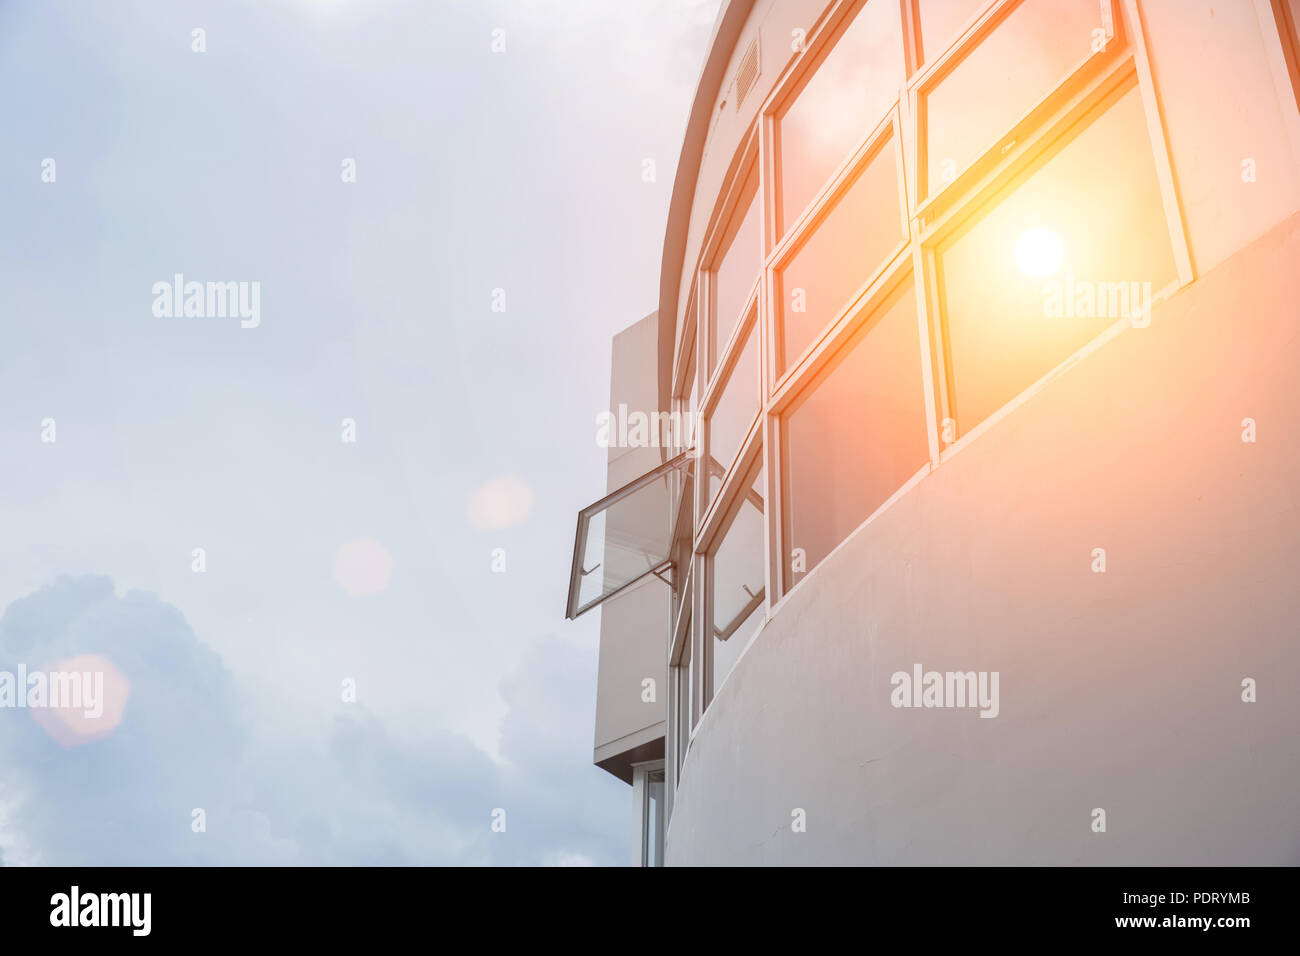 Hot weather high sunny day office windows UV protection exterior outdoor - Stock Image